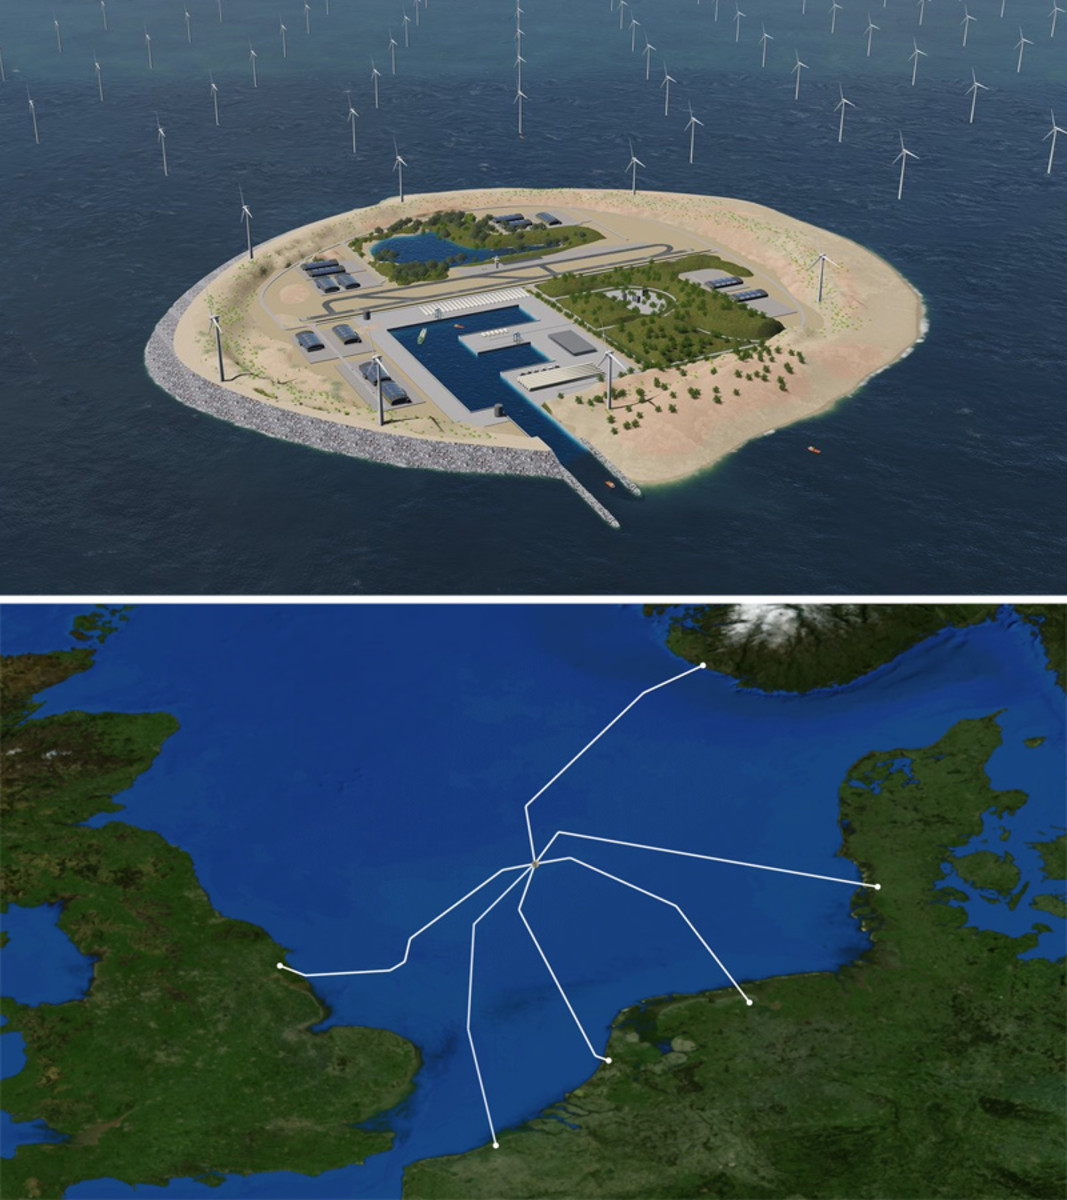 Future plans for massive wind farm project